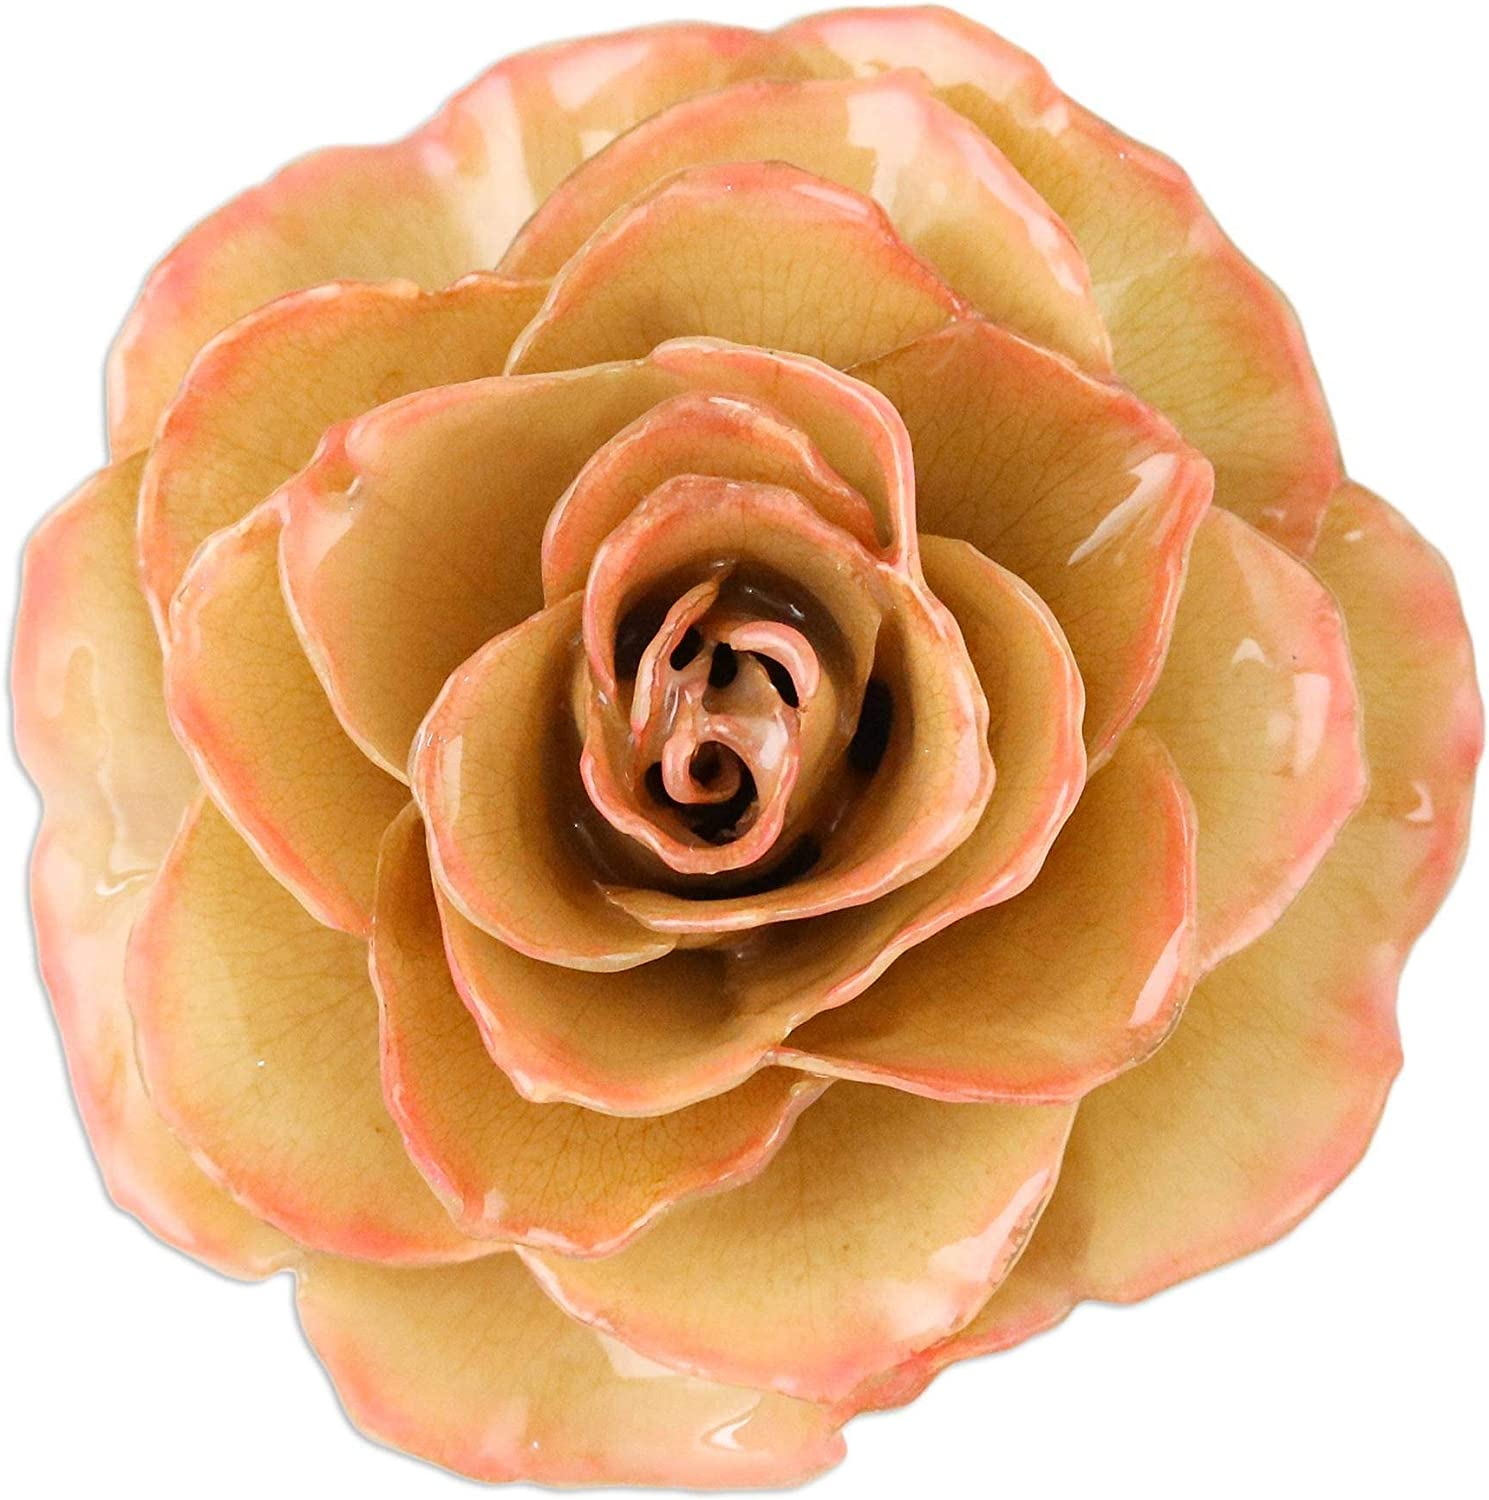 Rosy Mood in Cream NOVICA 24k Gold Plated Natural Rose Brooch